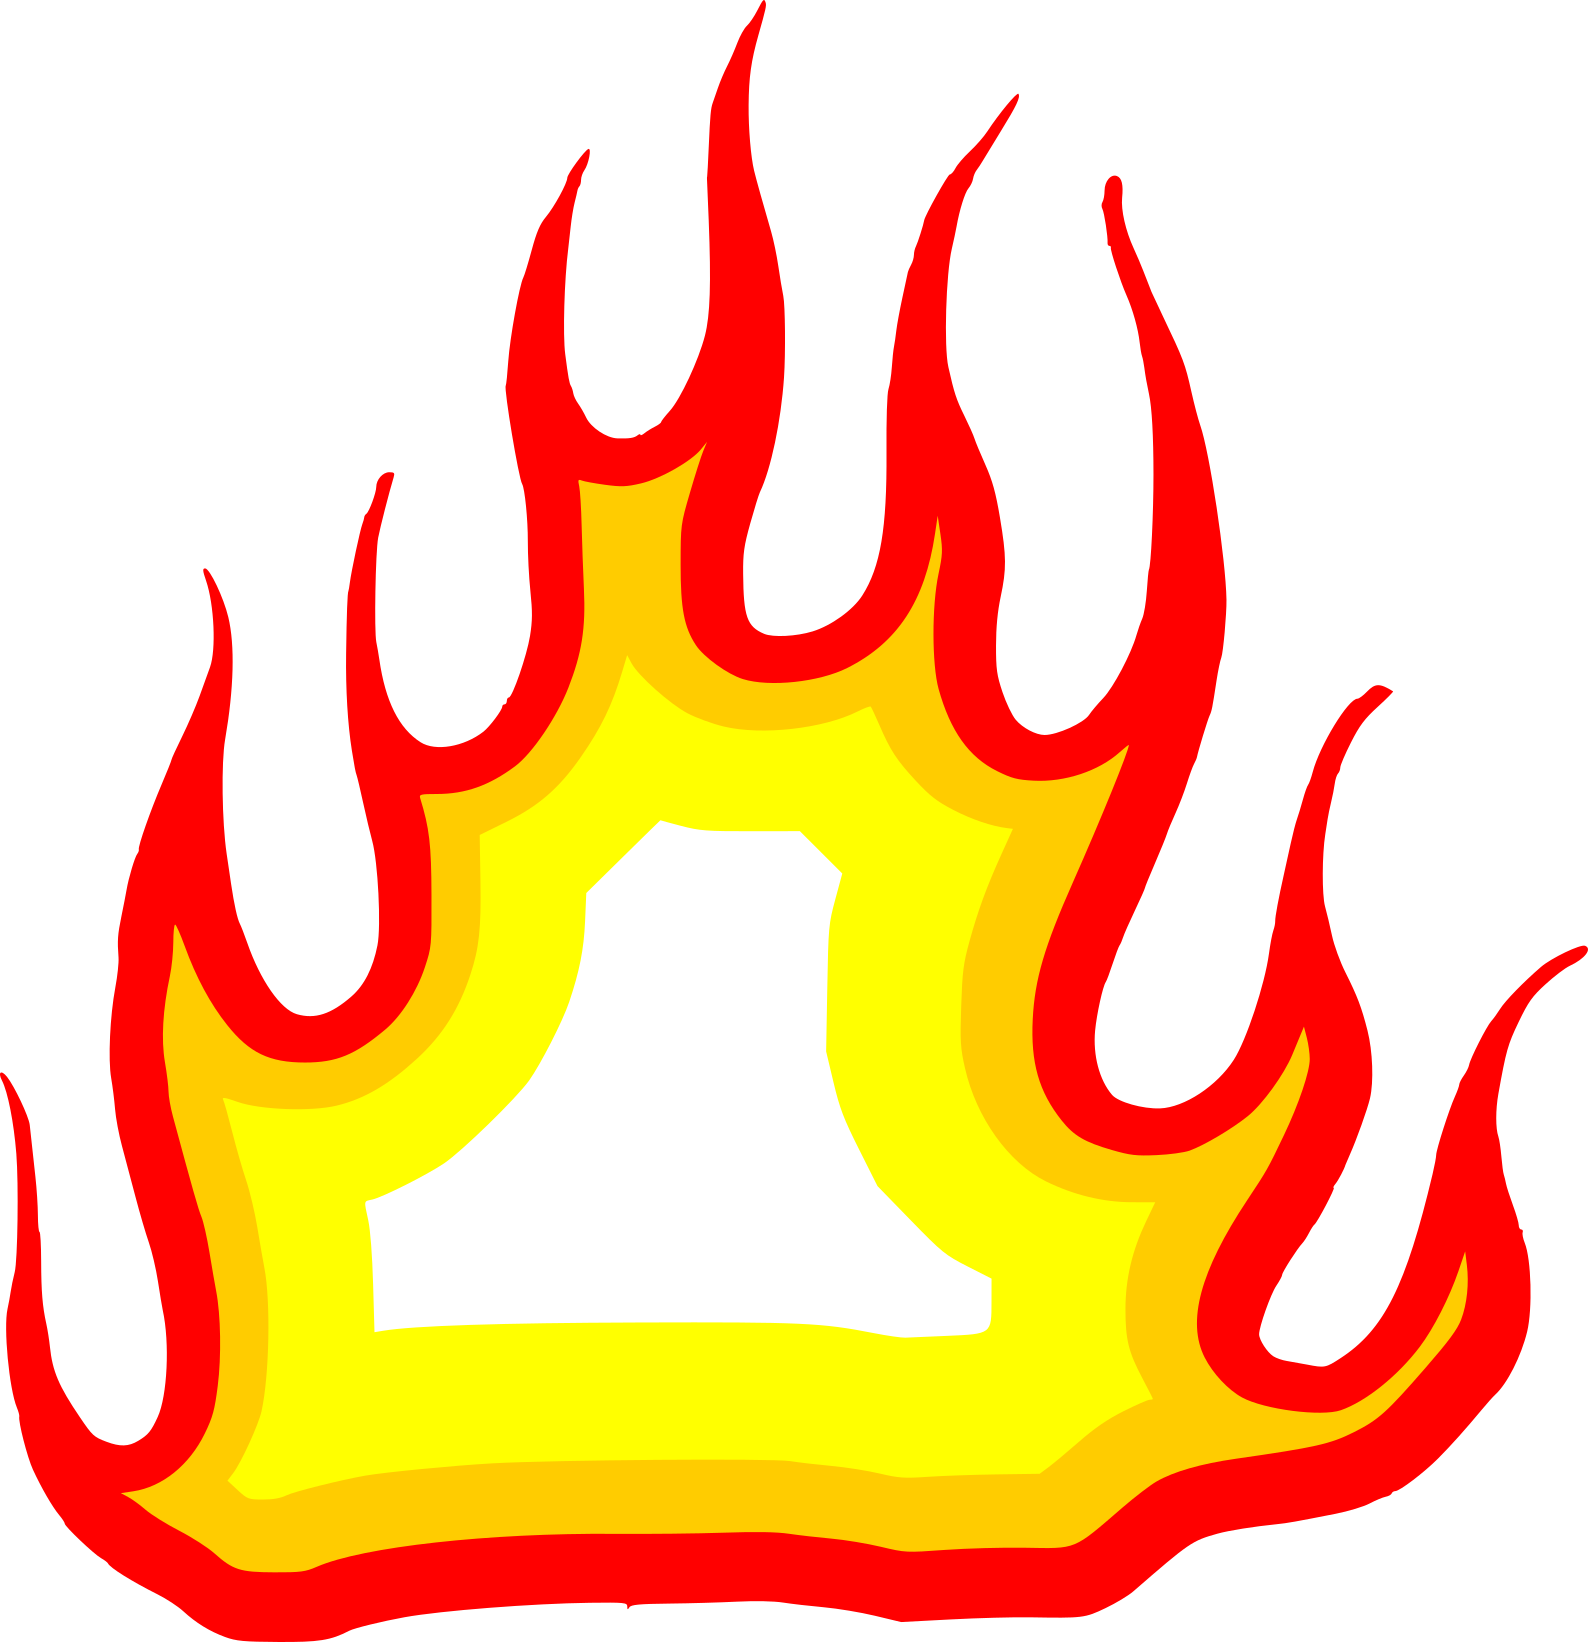 6-cartoon-fire-flame-elements-vector-4.png